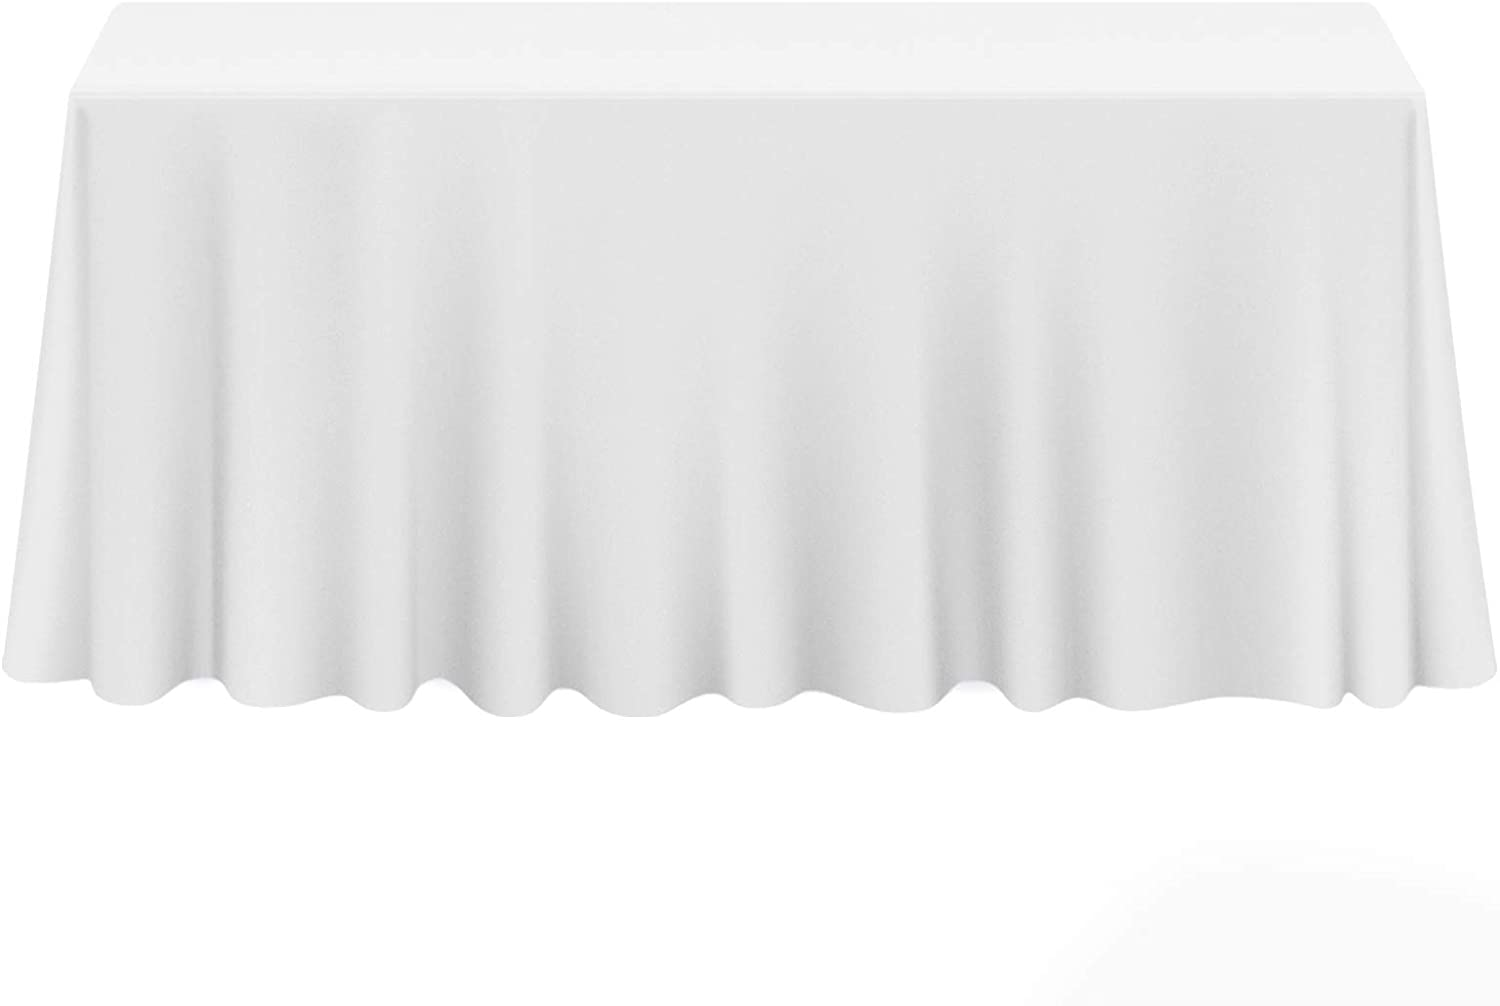 "Lann's Linens - 90"" x 132"" Premium Tablecloth for Wedding/Banquet/Restaurant - Rectangular Polyester Fabric Table Cloth - White: Home & Kitchen"